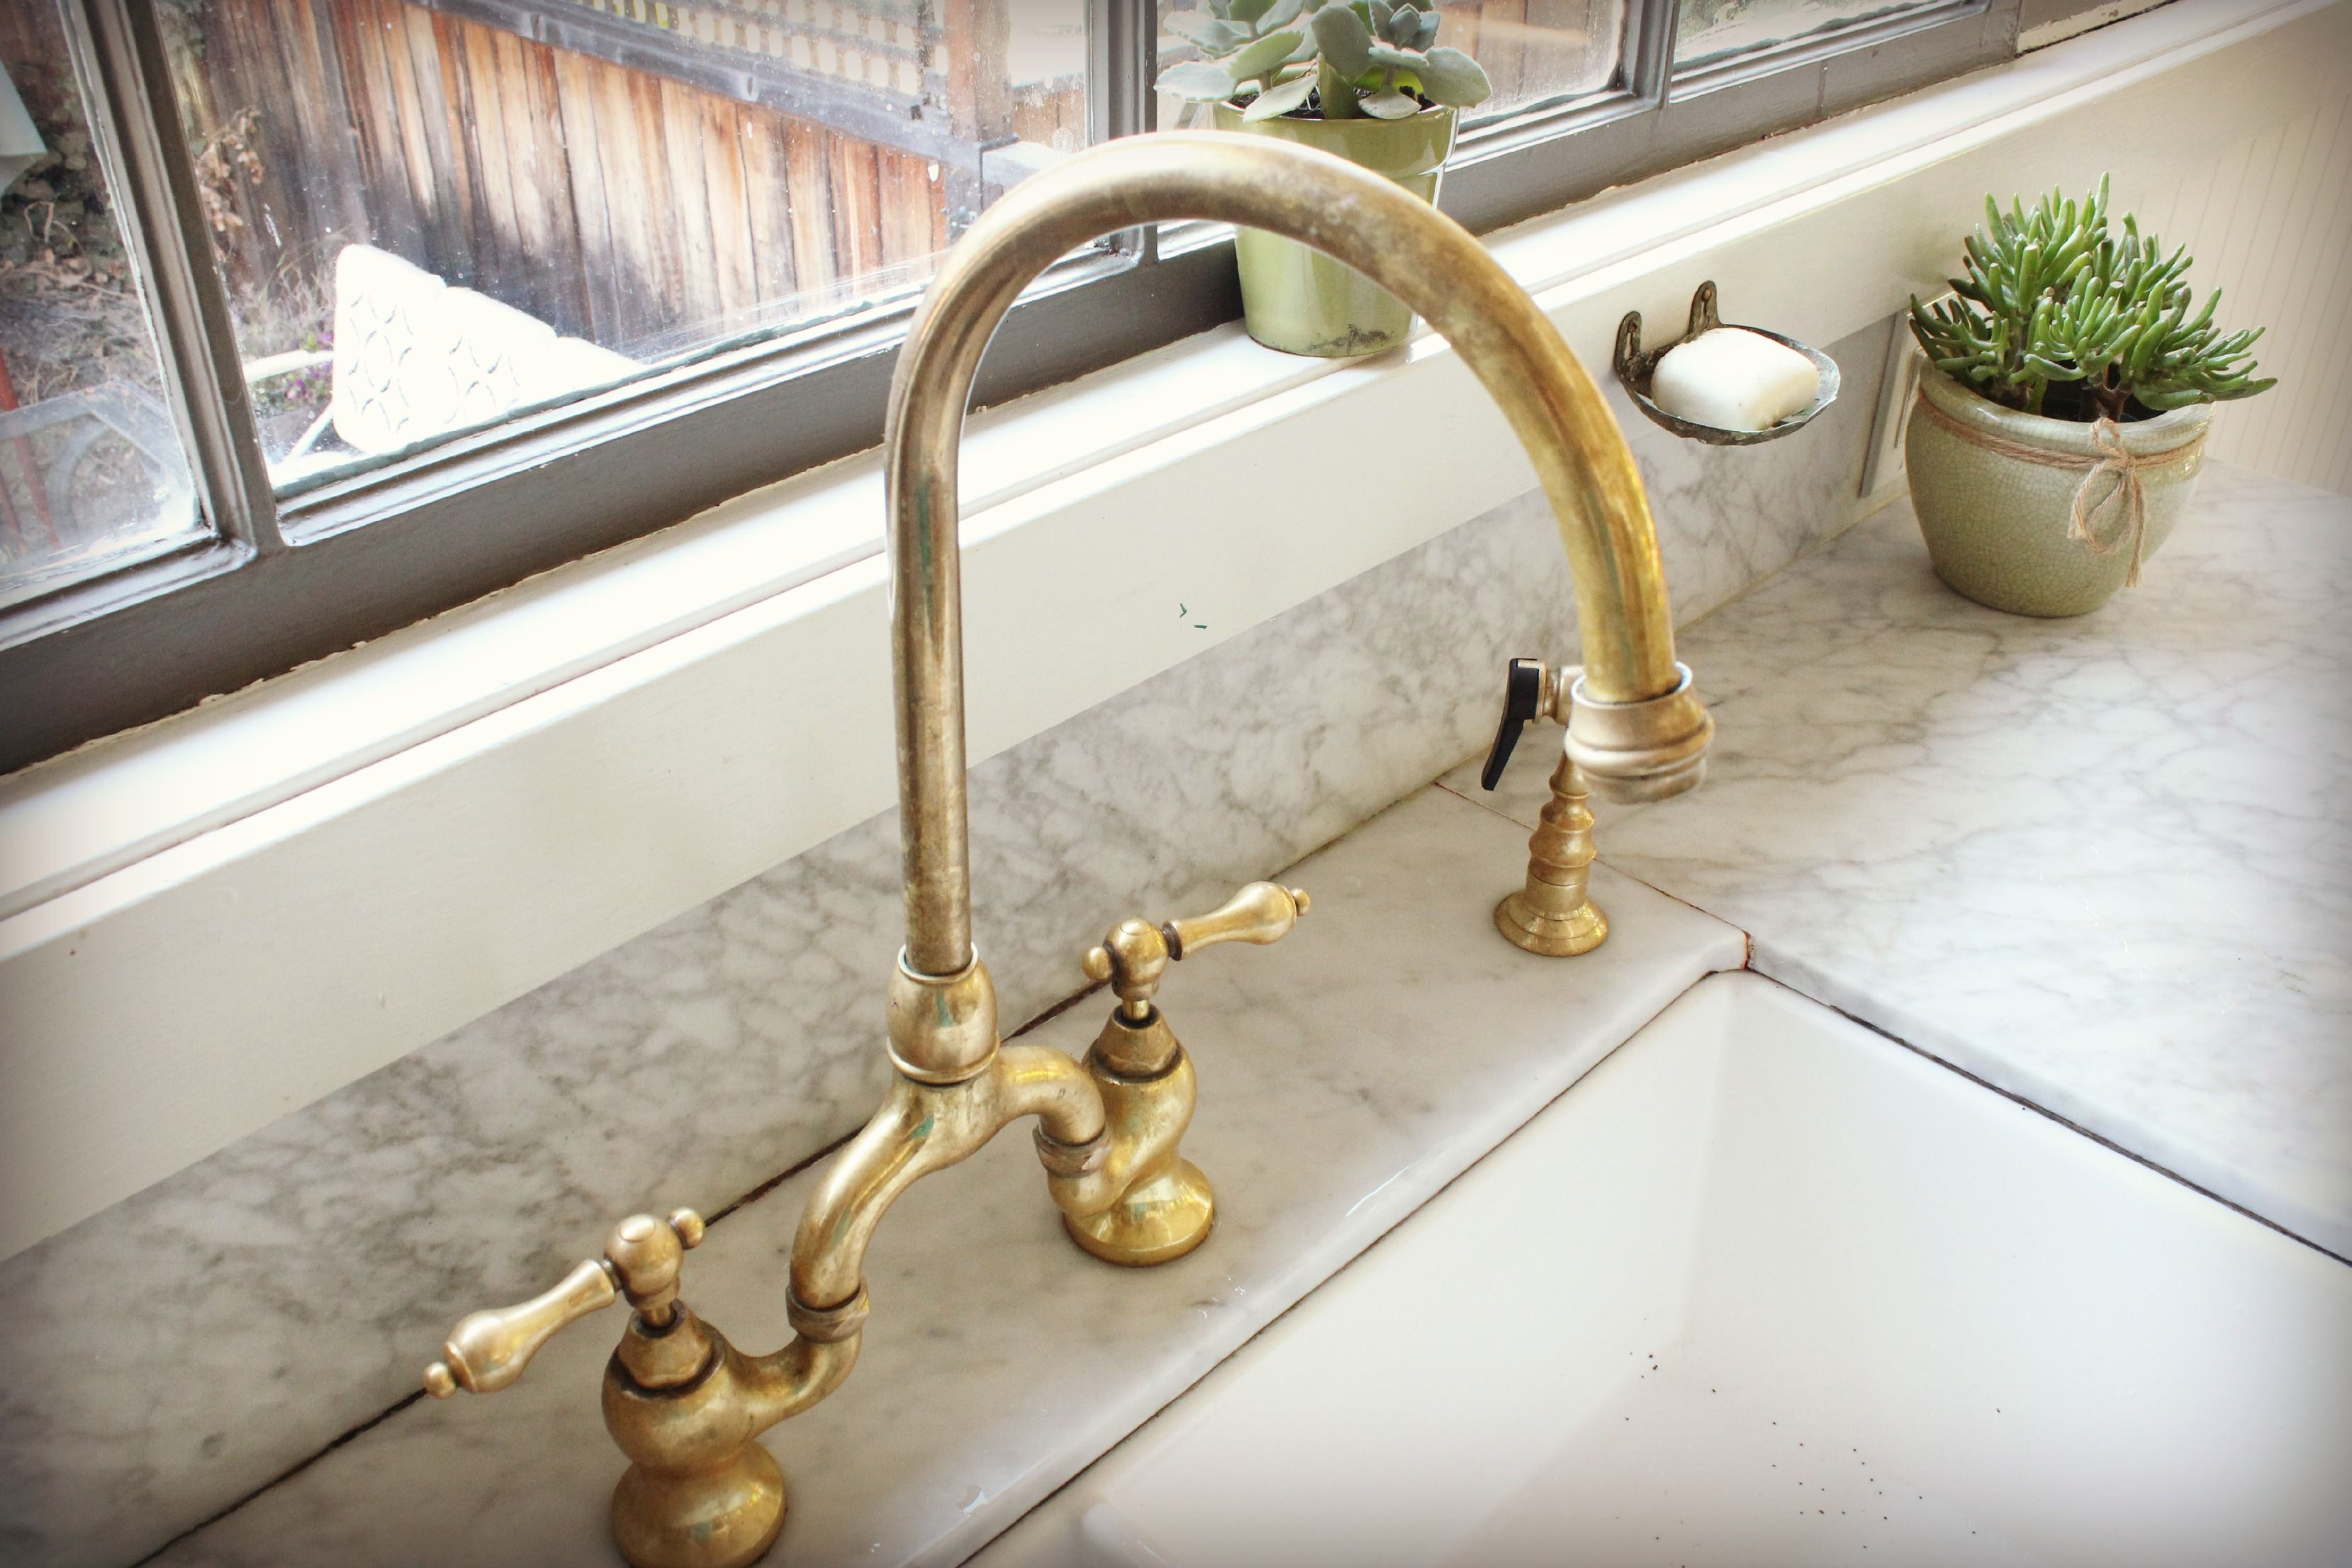 Antique Kitchen Faucets Unlacquered Brass Faucet Detail Old ...